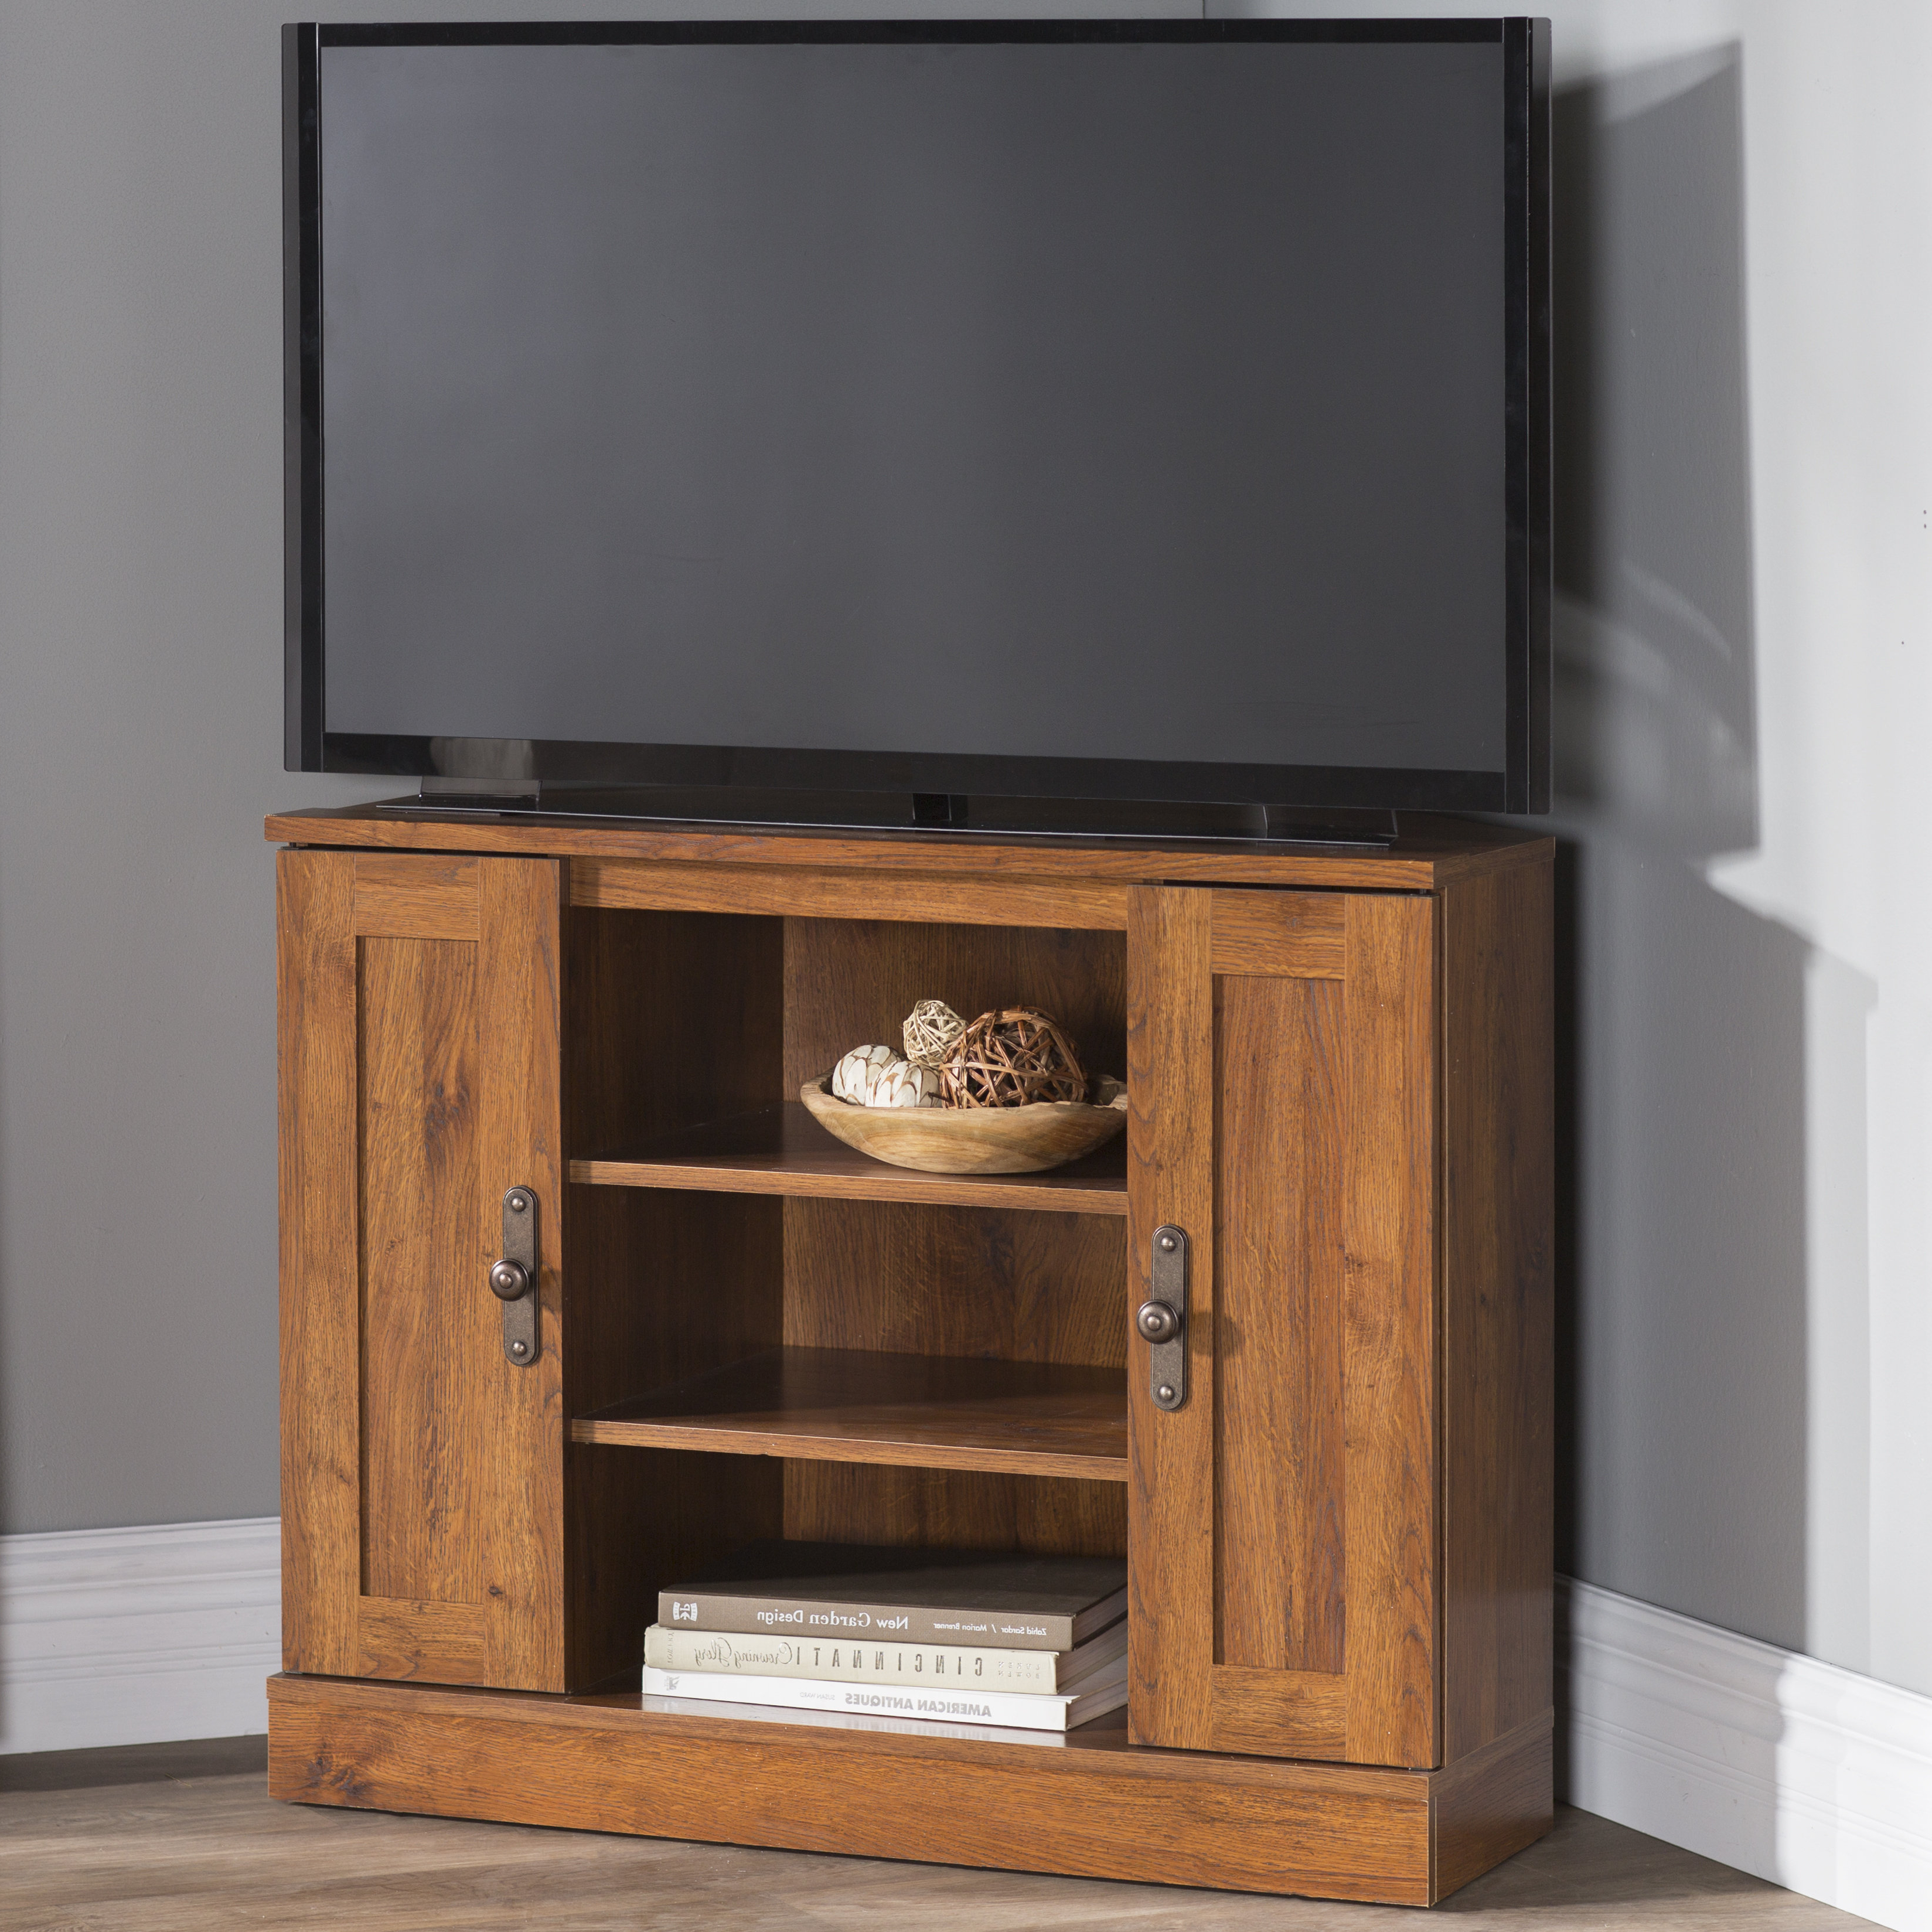 "Corner Tv Tables Stands In 2017 Alcott Hill Englewood Corner Tv Stand For Tvs Up To 37"" & Reviews (View 5 of 20)"